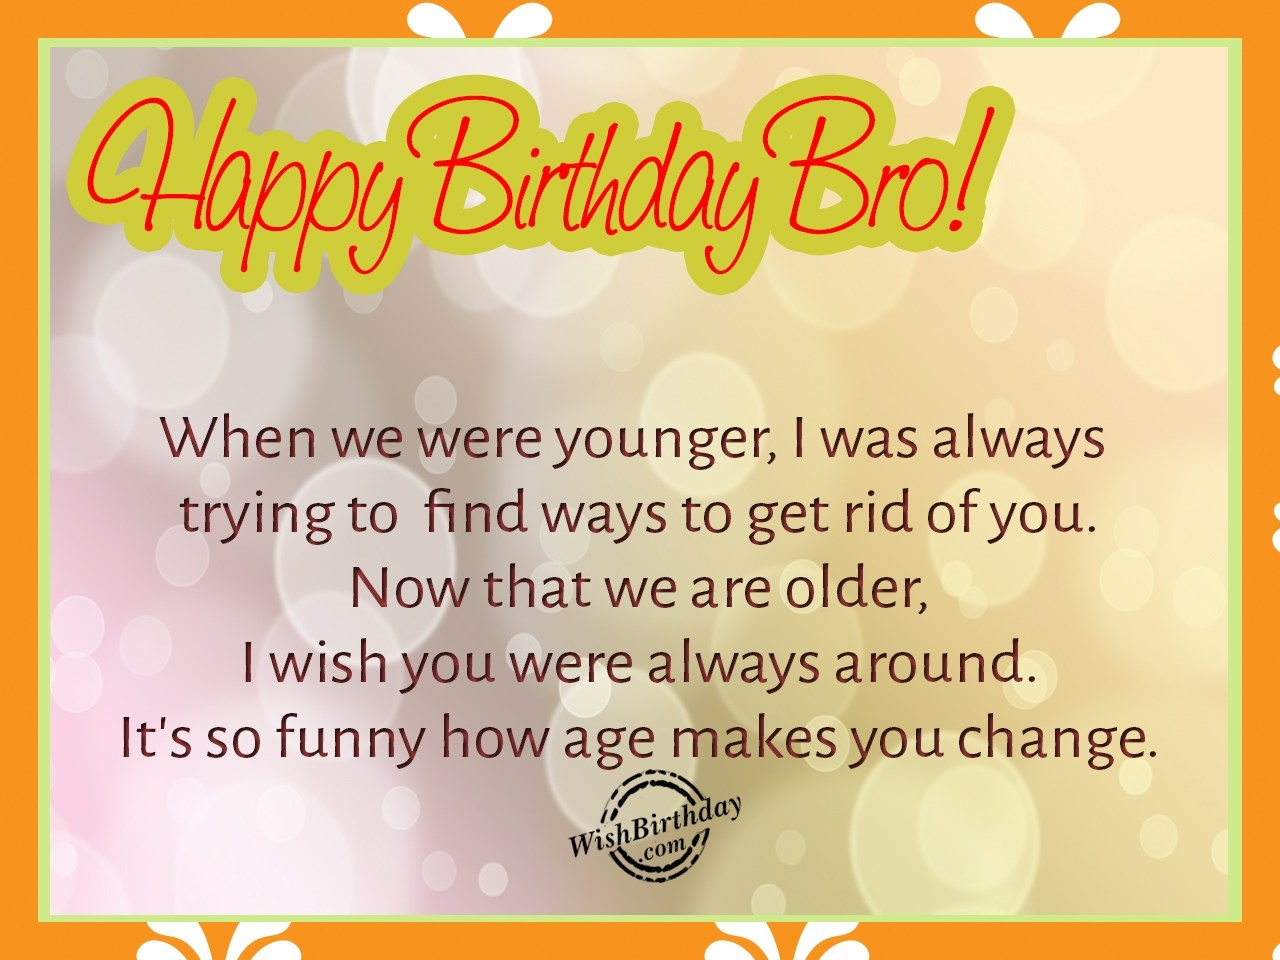 birthday wishes for brother greeting cards ; breathtaking-happy-birthday-wishes-for-gorgeous-brother-happy-birthday-with-regard-to-inspiring-happy-birthday-little-brother-quotes-inspiration